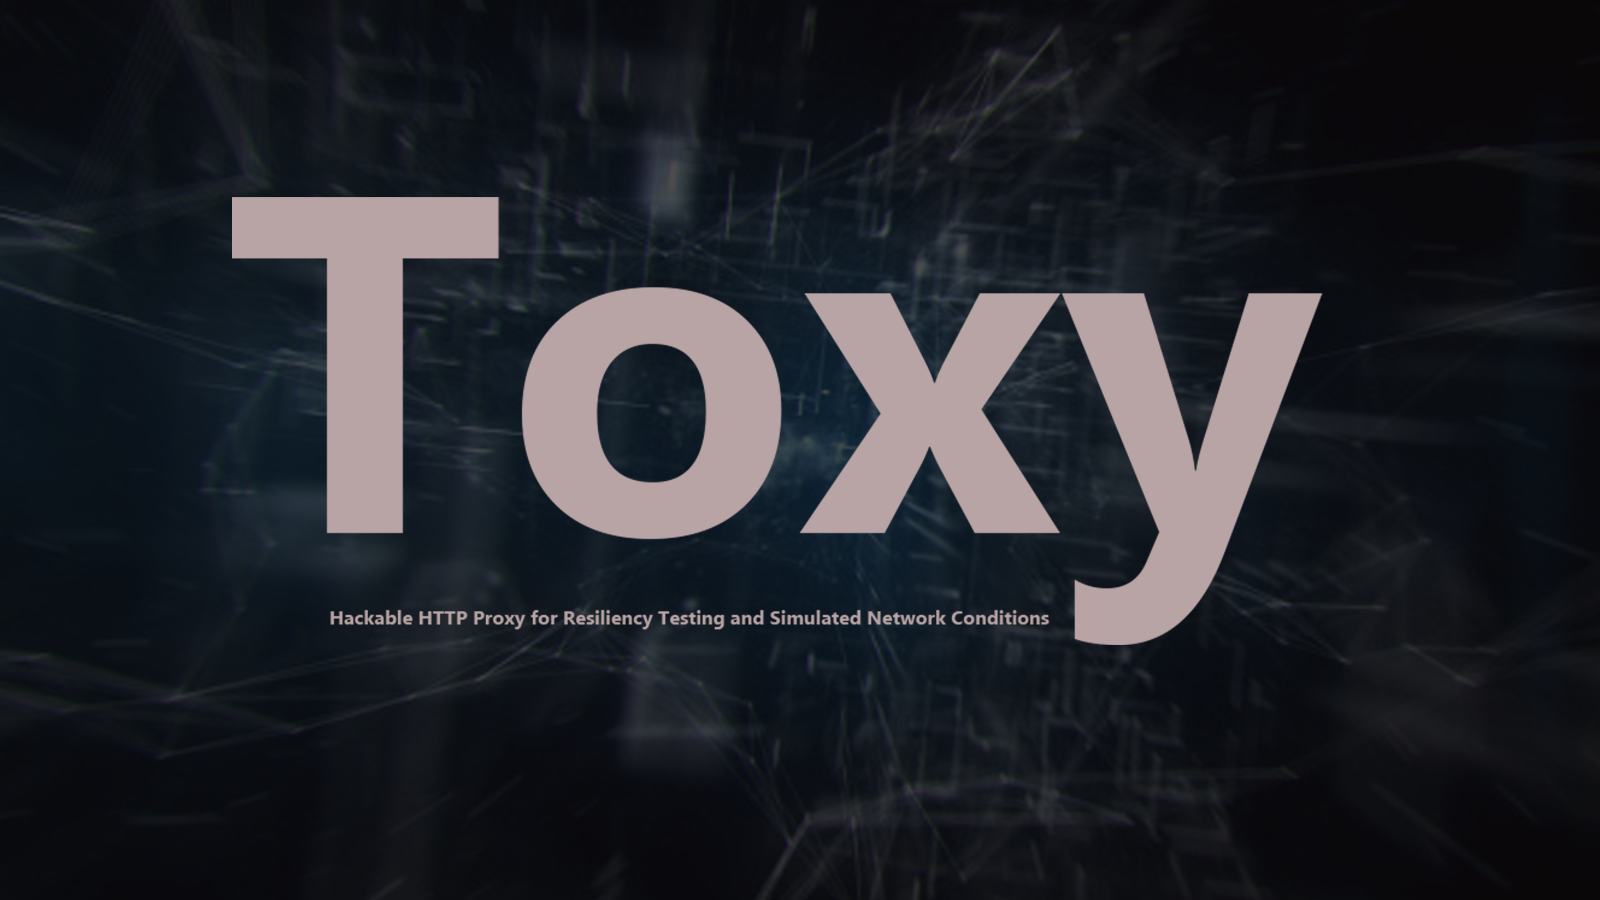 Toxy - Hackable HTTP Proxy for Resiliency Testing and Simulated Network Conditions